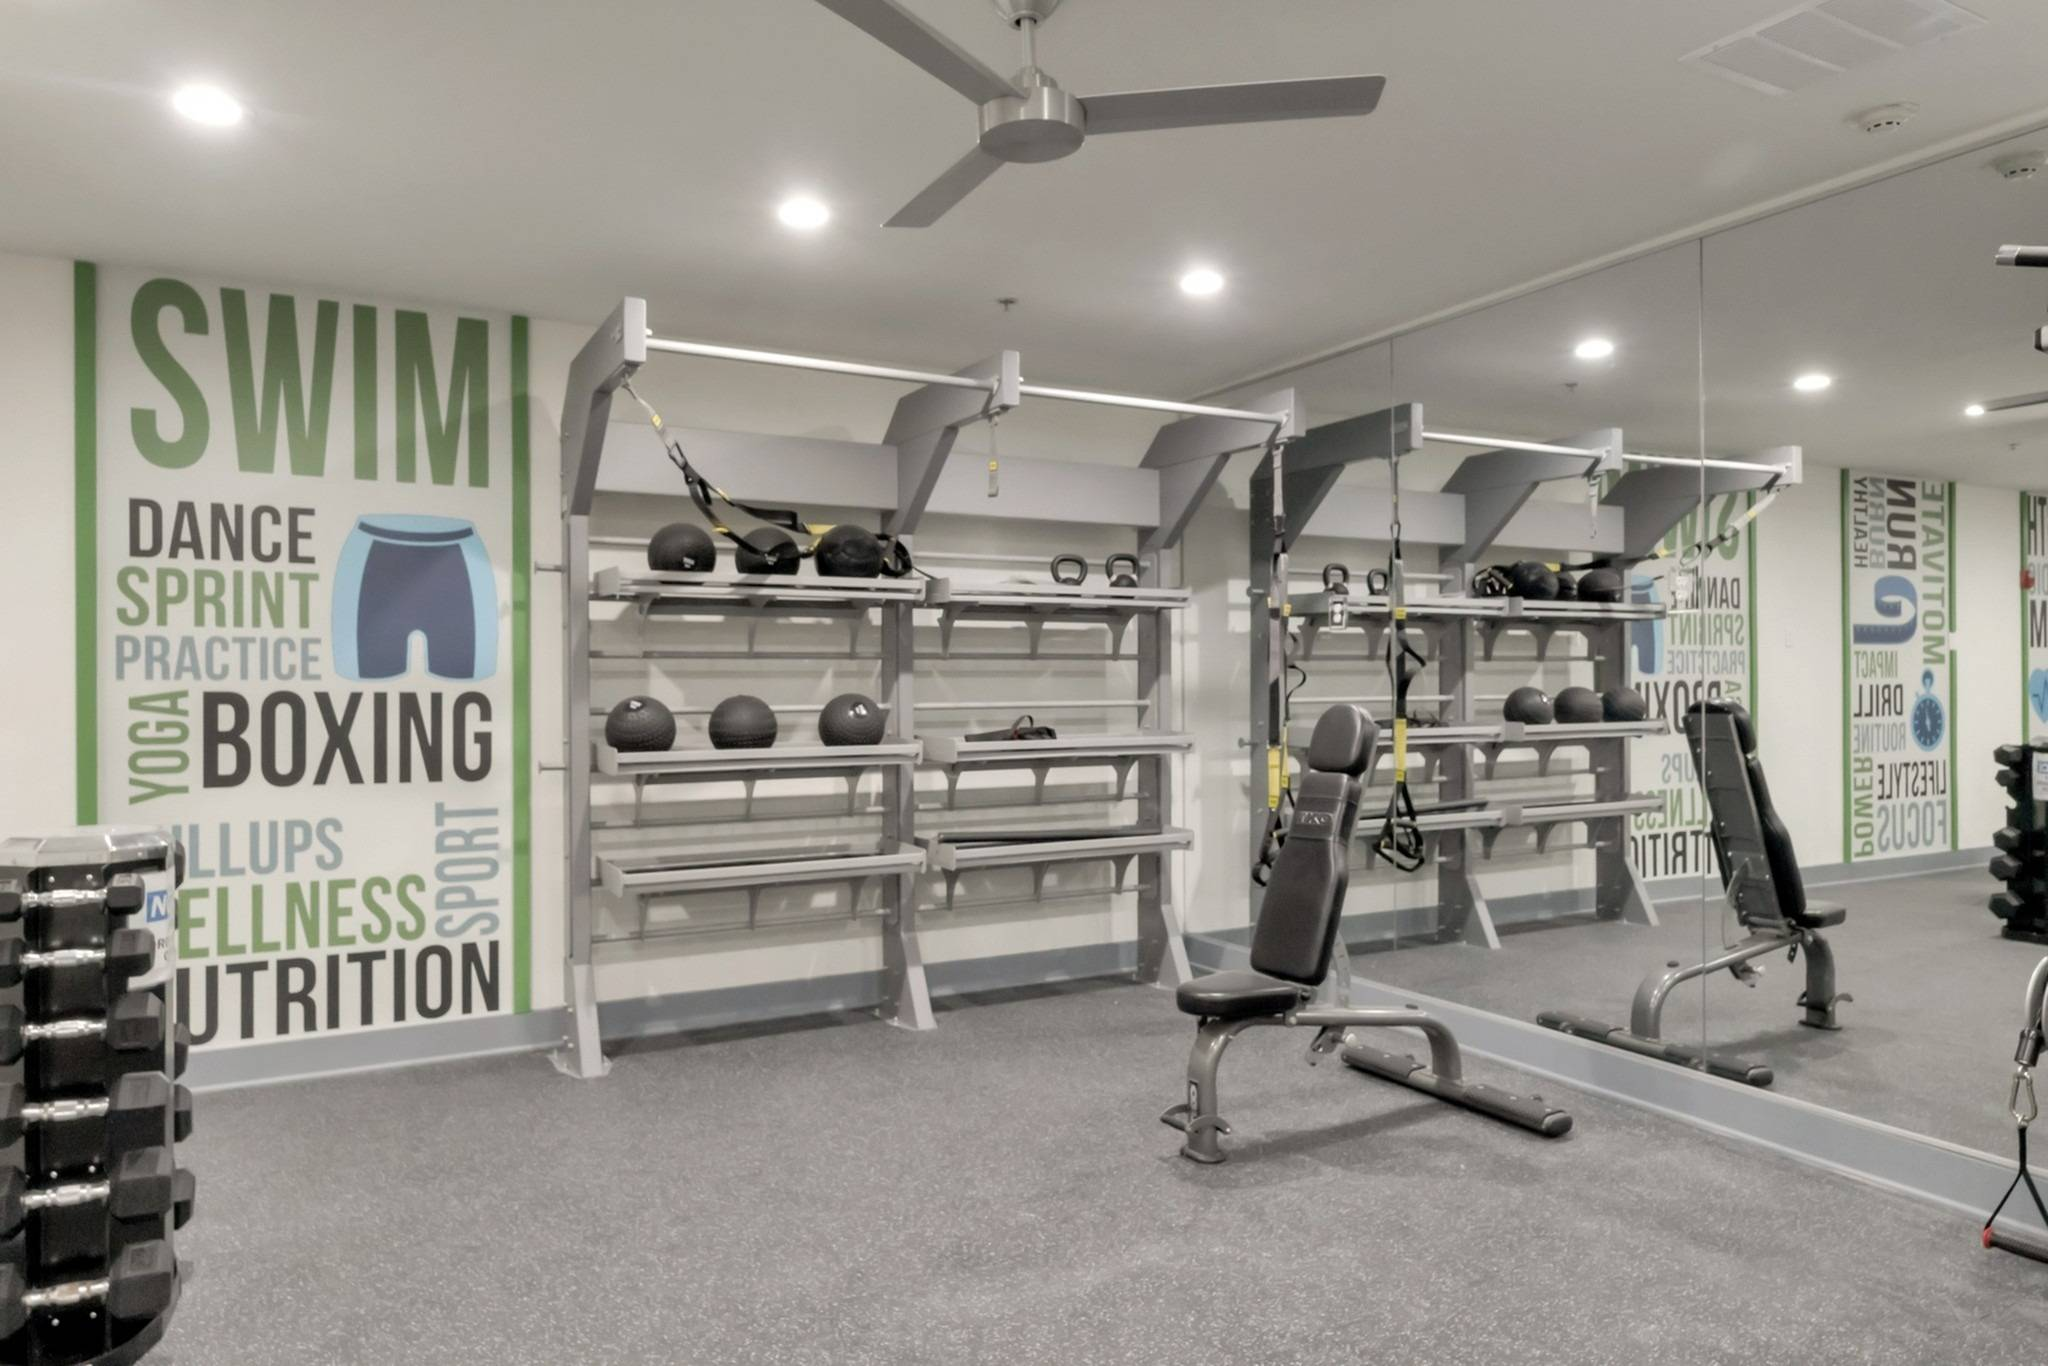 Part of Fitness Center